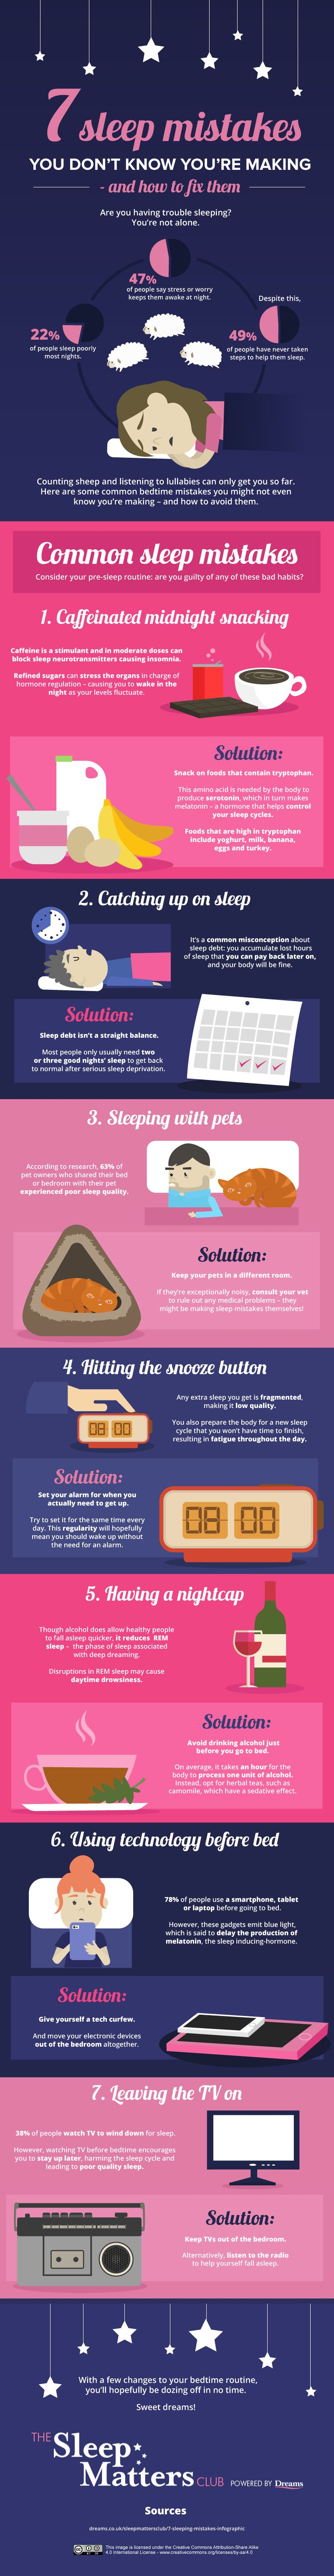 Sleep Mistakes You Don't Know You're Making (Infographic)